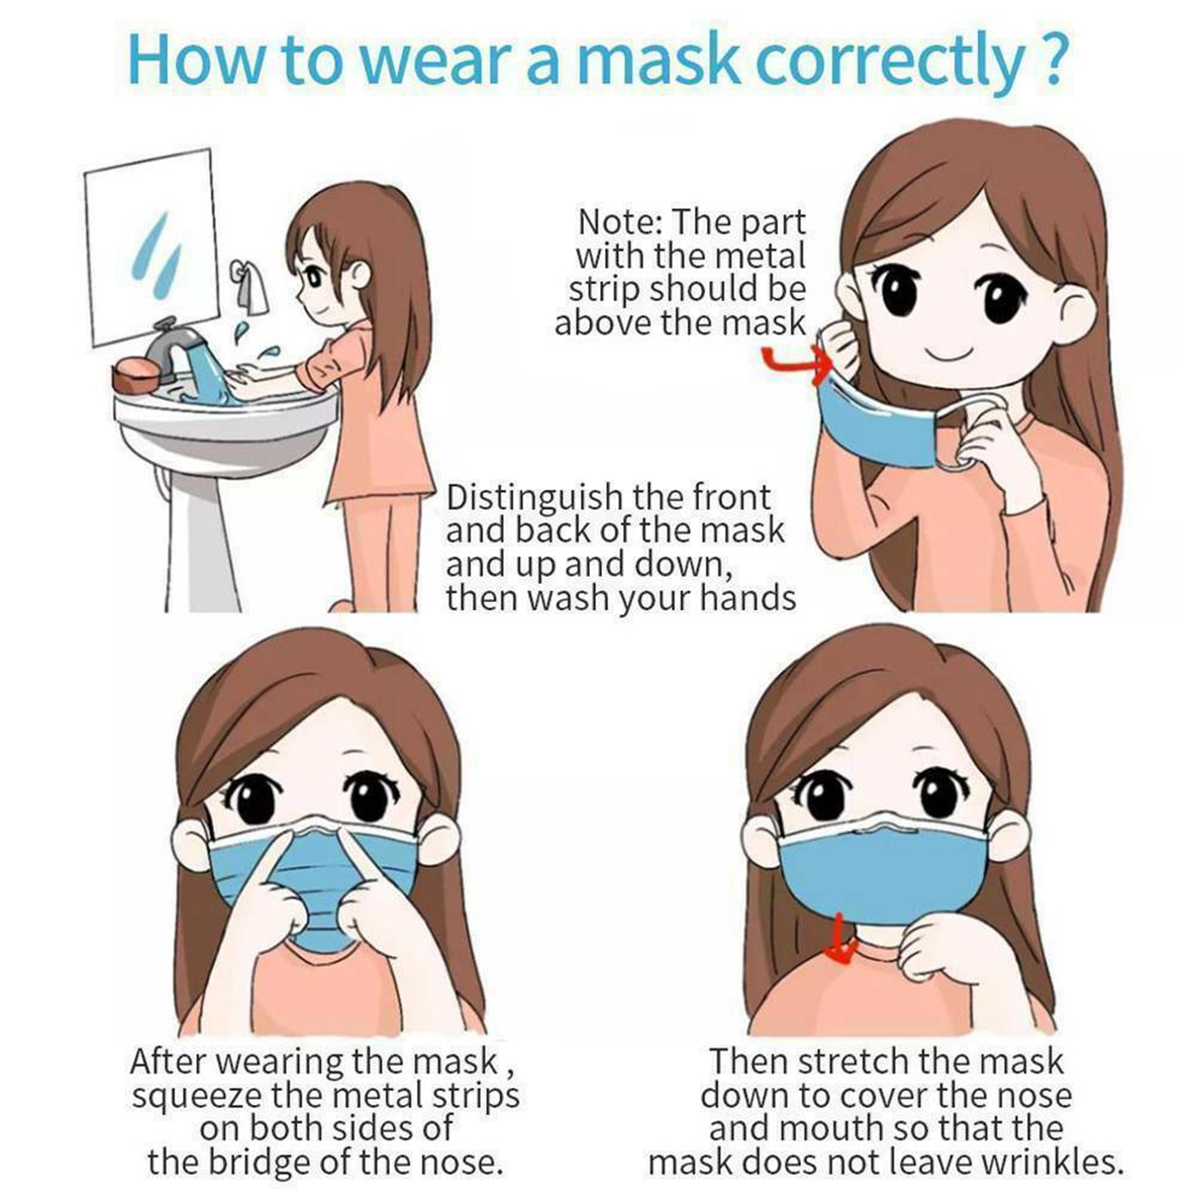 10PCS 3-Layer Protective Mask PM2.5 Breathable Face Mask Non-Woven Anti Dust Proof Disposal Mask Set